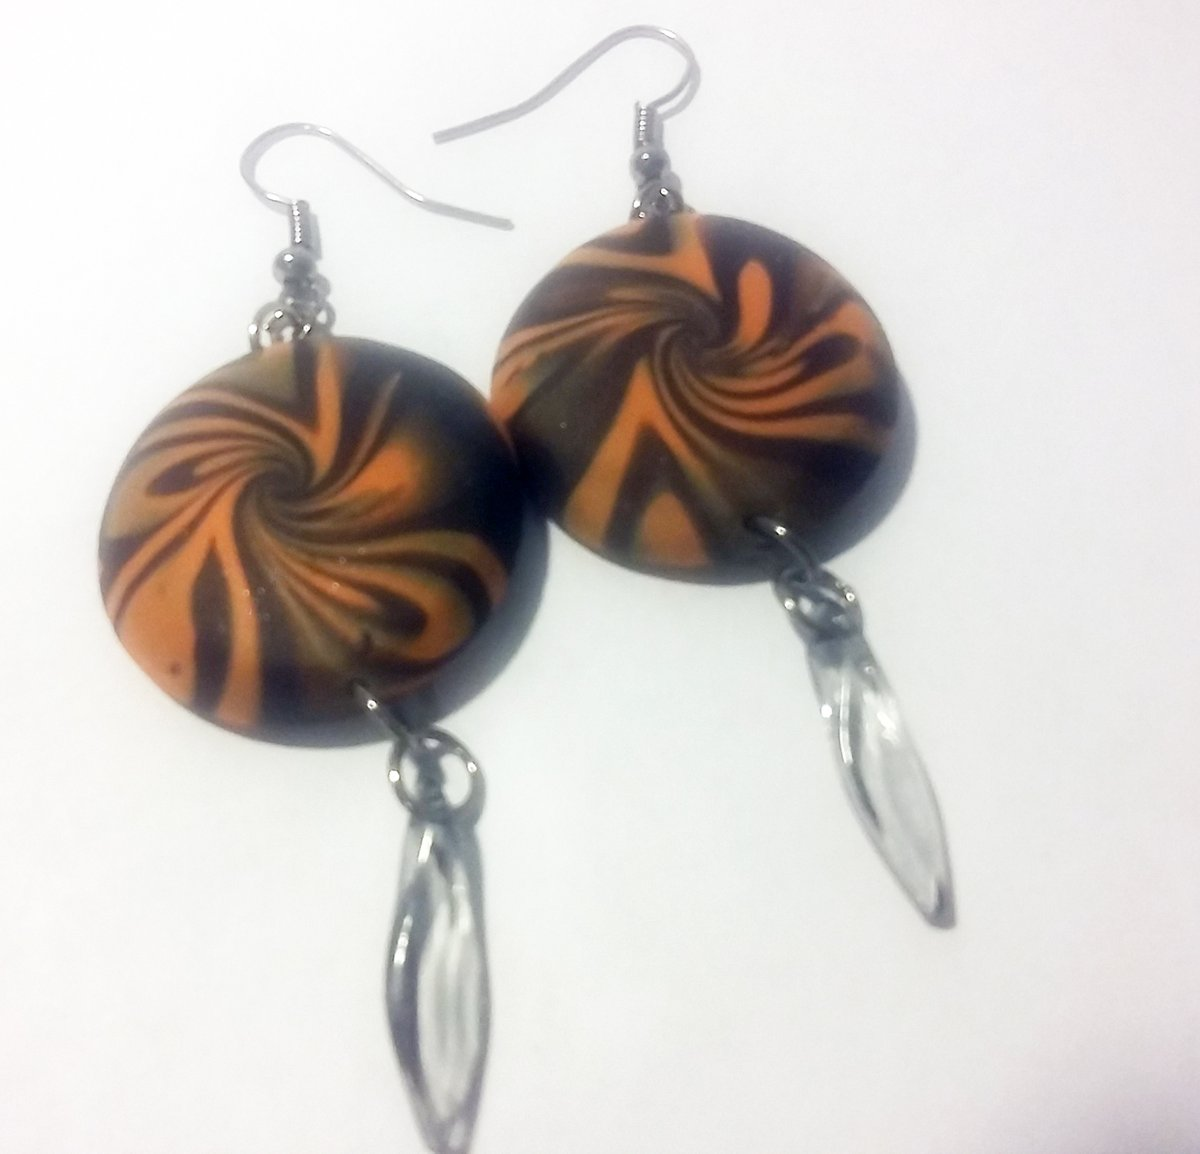 #black #costume #earrings #freeshipping #gift #giftforwomen #goth #halloween #handcrafted #handmade #holiday #jewelry #largeearrings #madeintheUSA #orange #party #polymerclay #polymerclayearrings #shippingincluded #silver #spooky #statement #statementearri https://t.co/6l5aVclx5A https://t.co/u60047R0lC